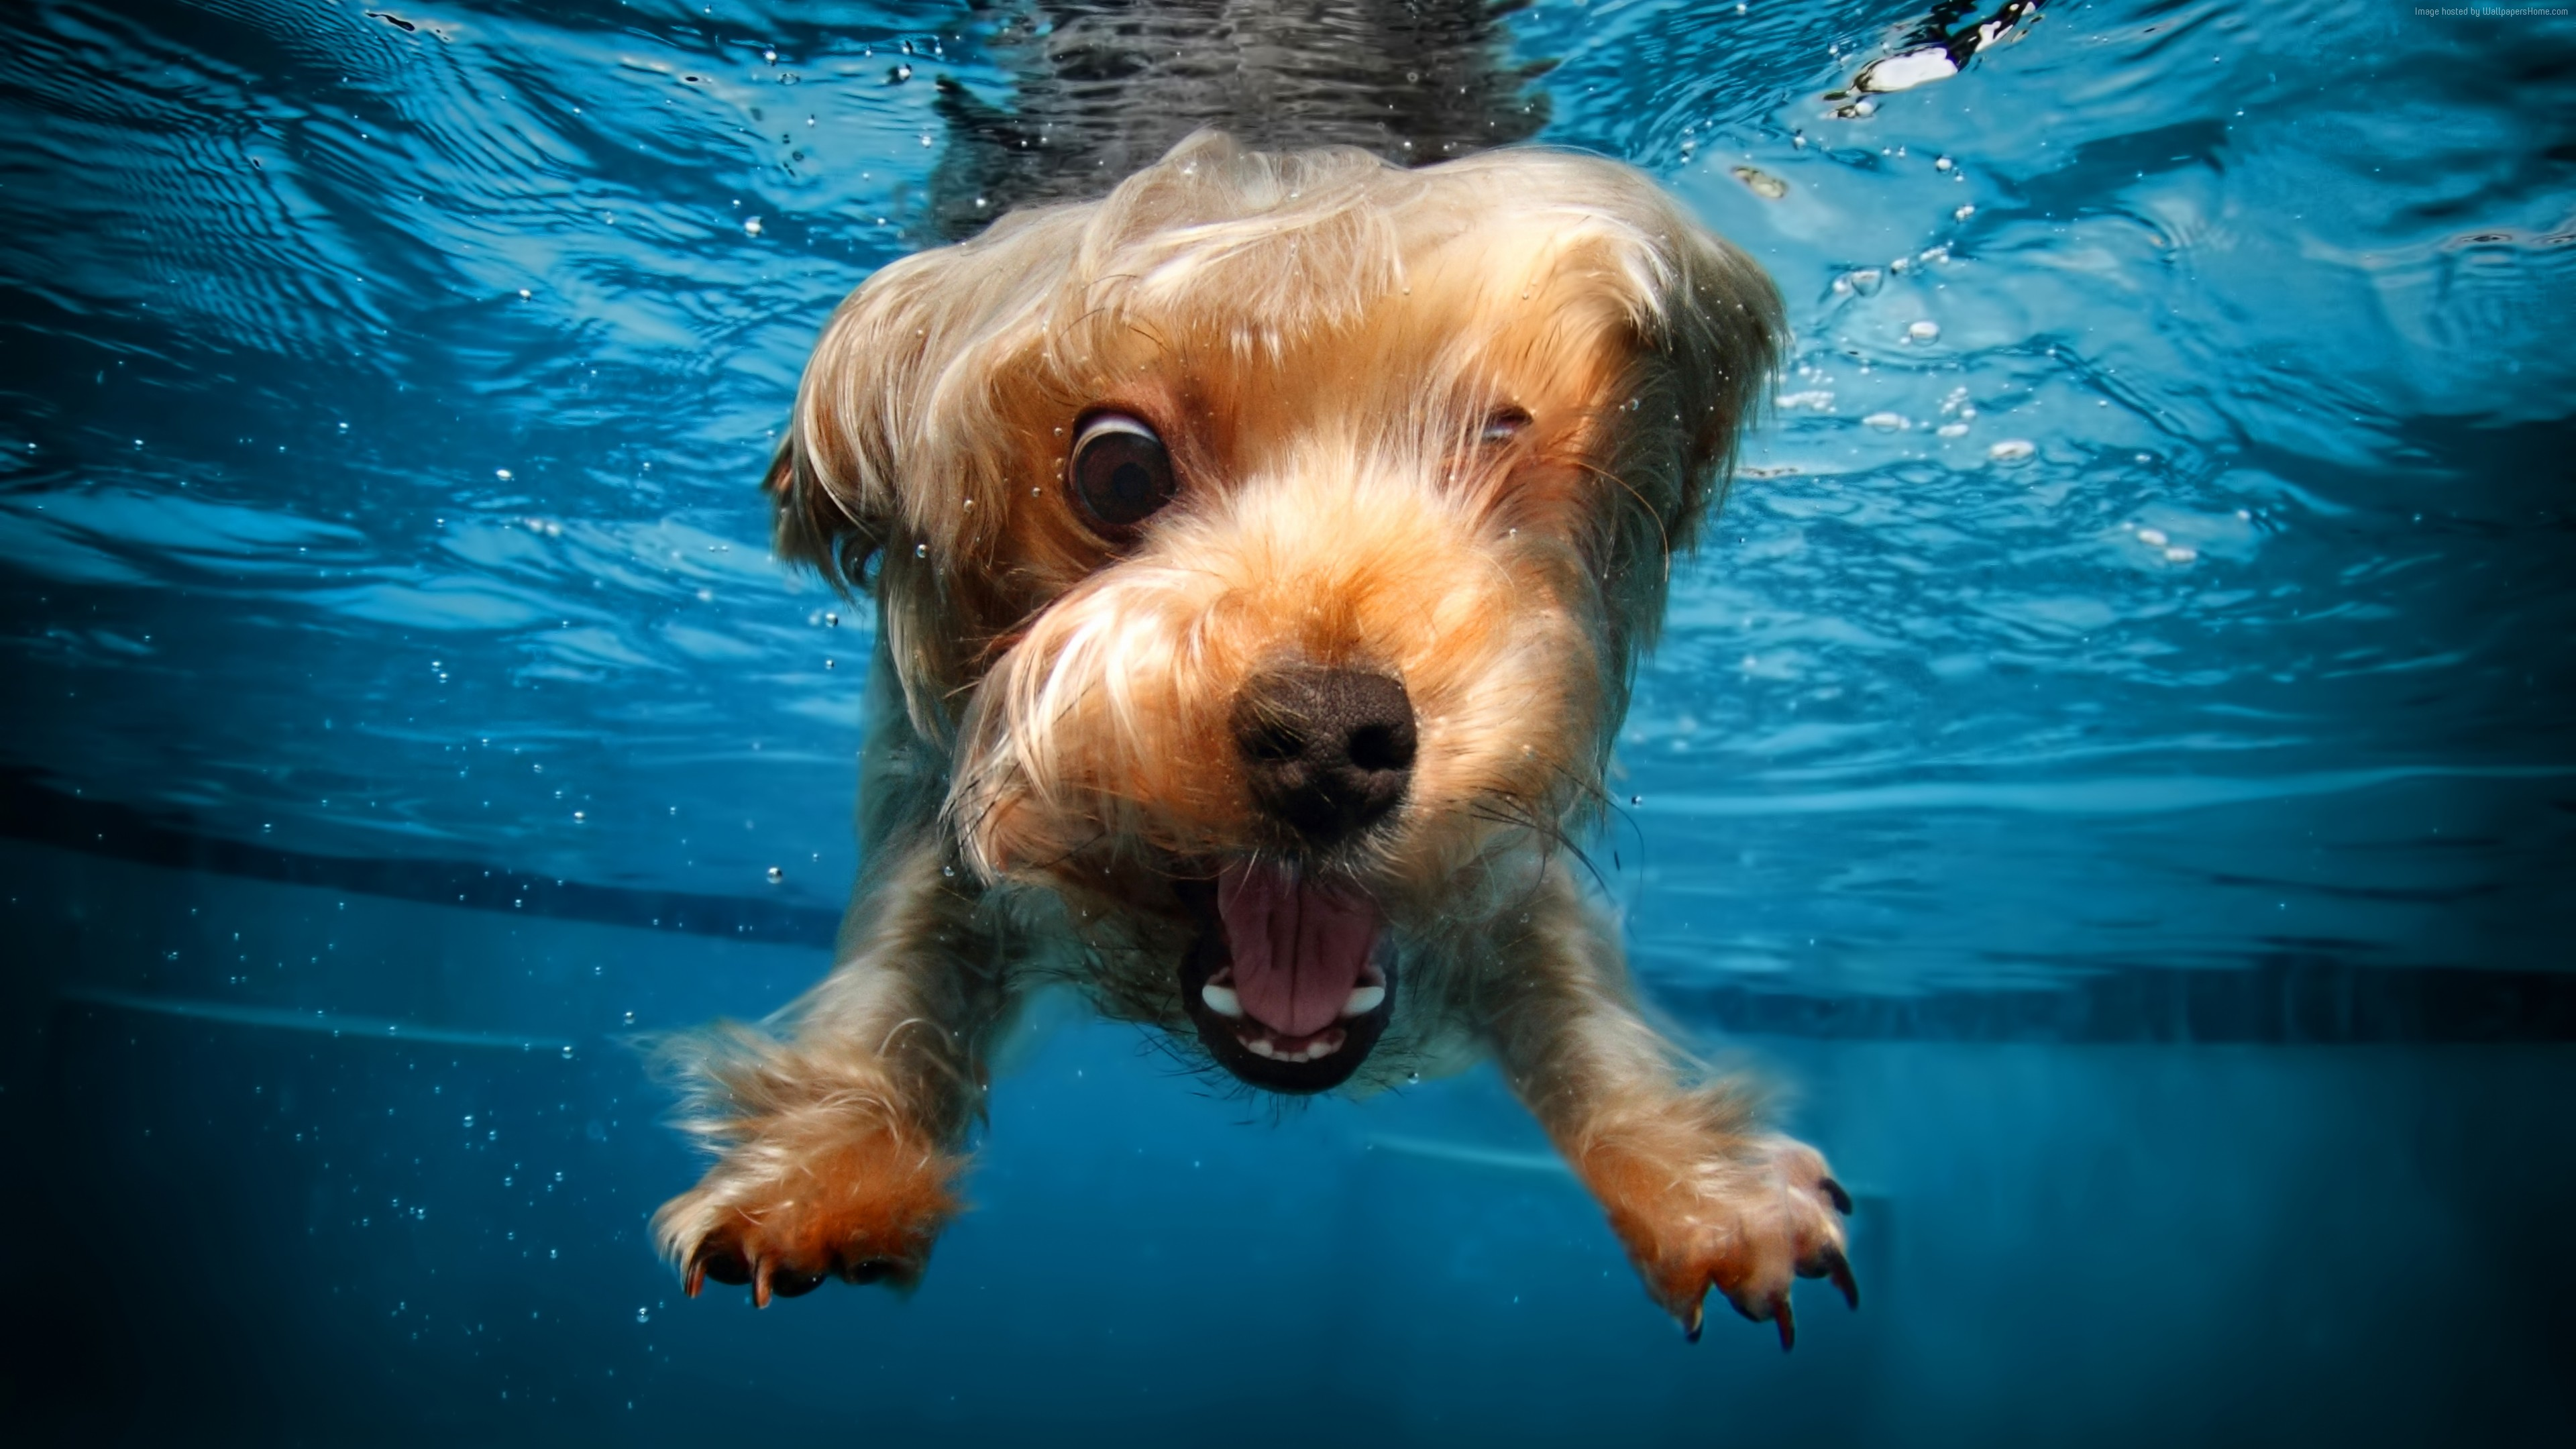 Wallpaper terrier, dog, underwater, cute animals, funny, Animals